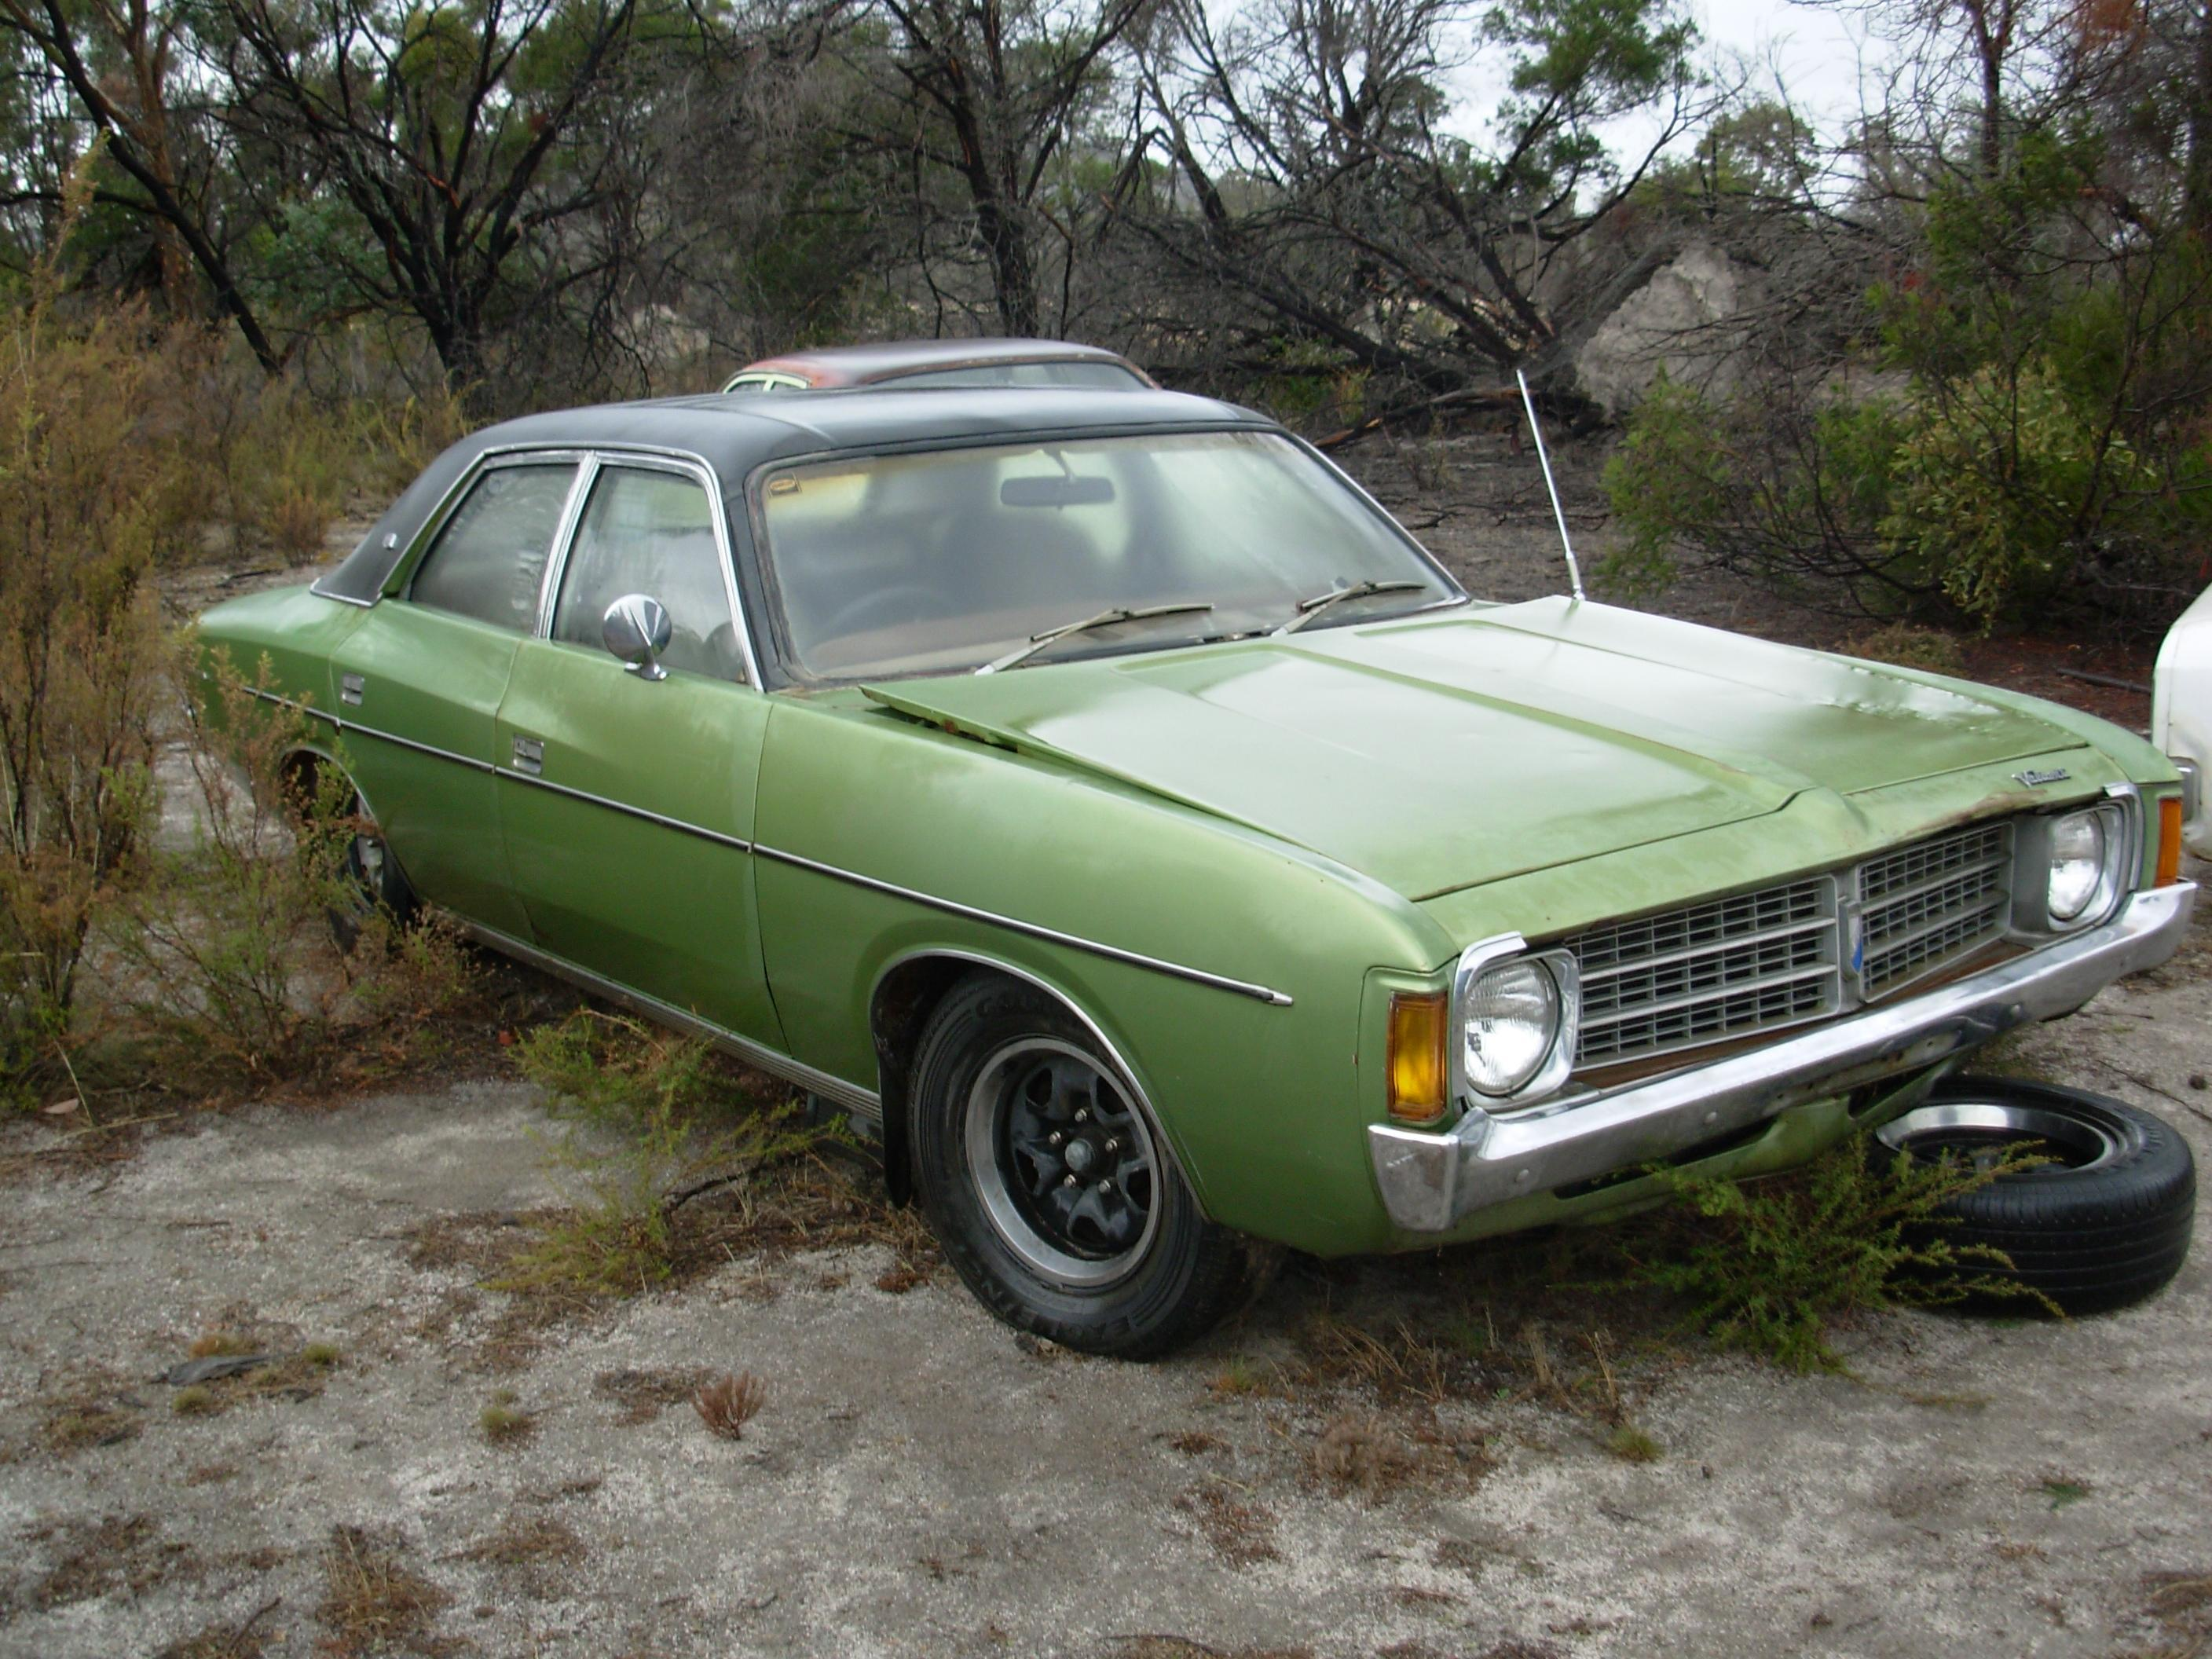 1973 Chrysler Valiant #2